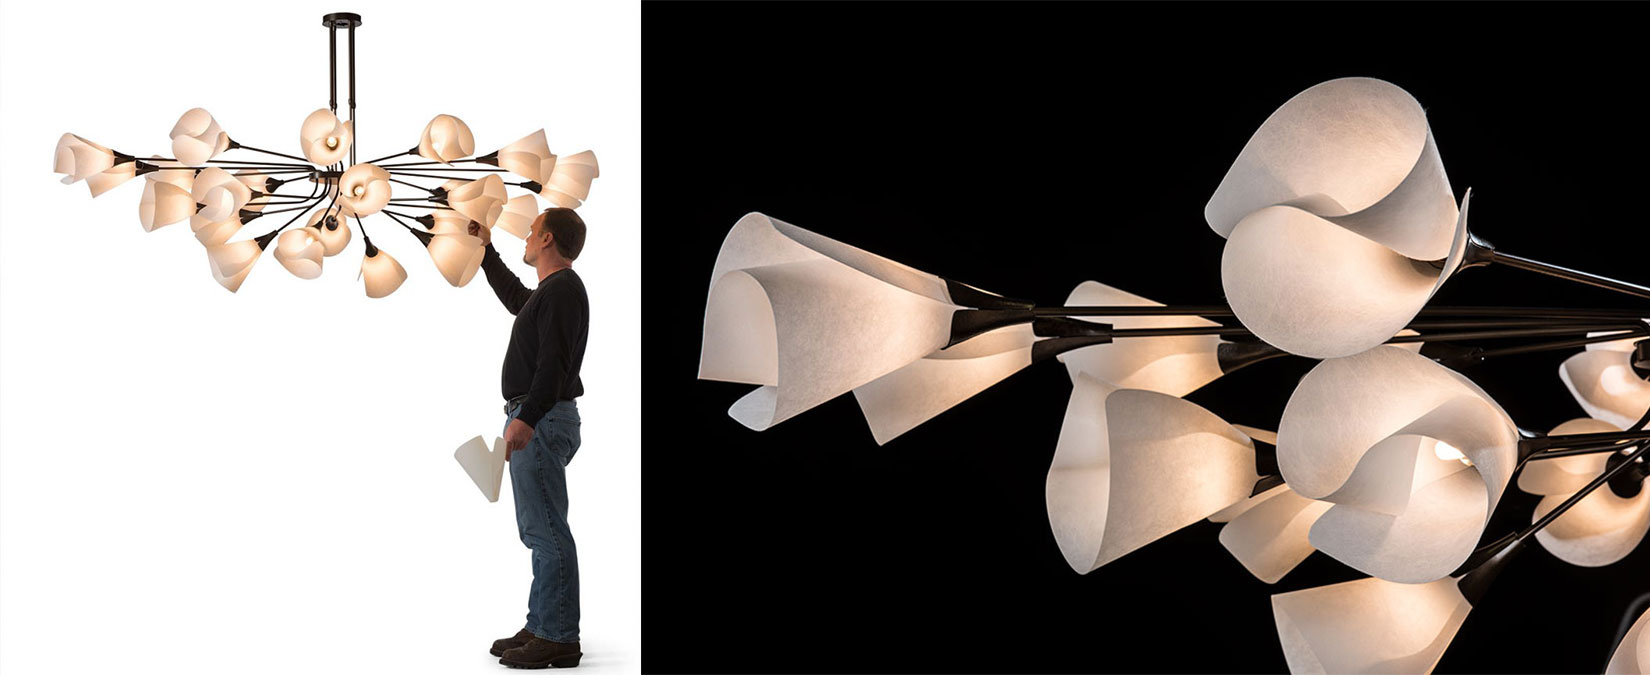 Large Scale Mobius Light